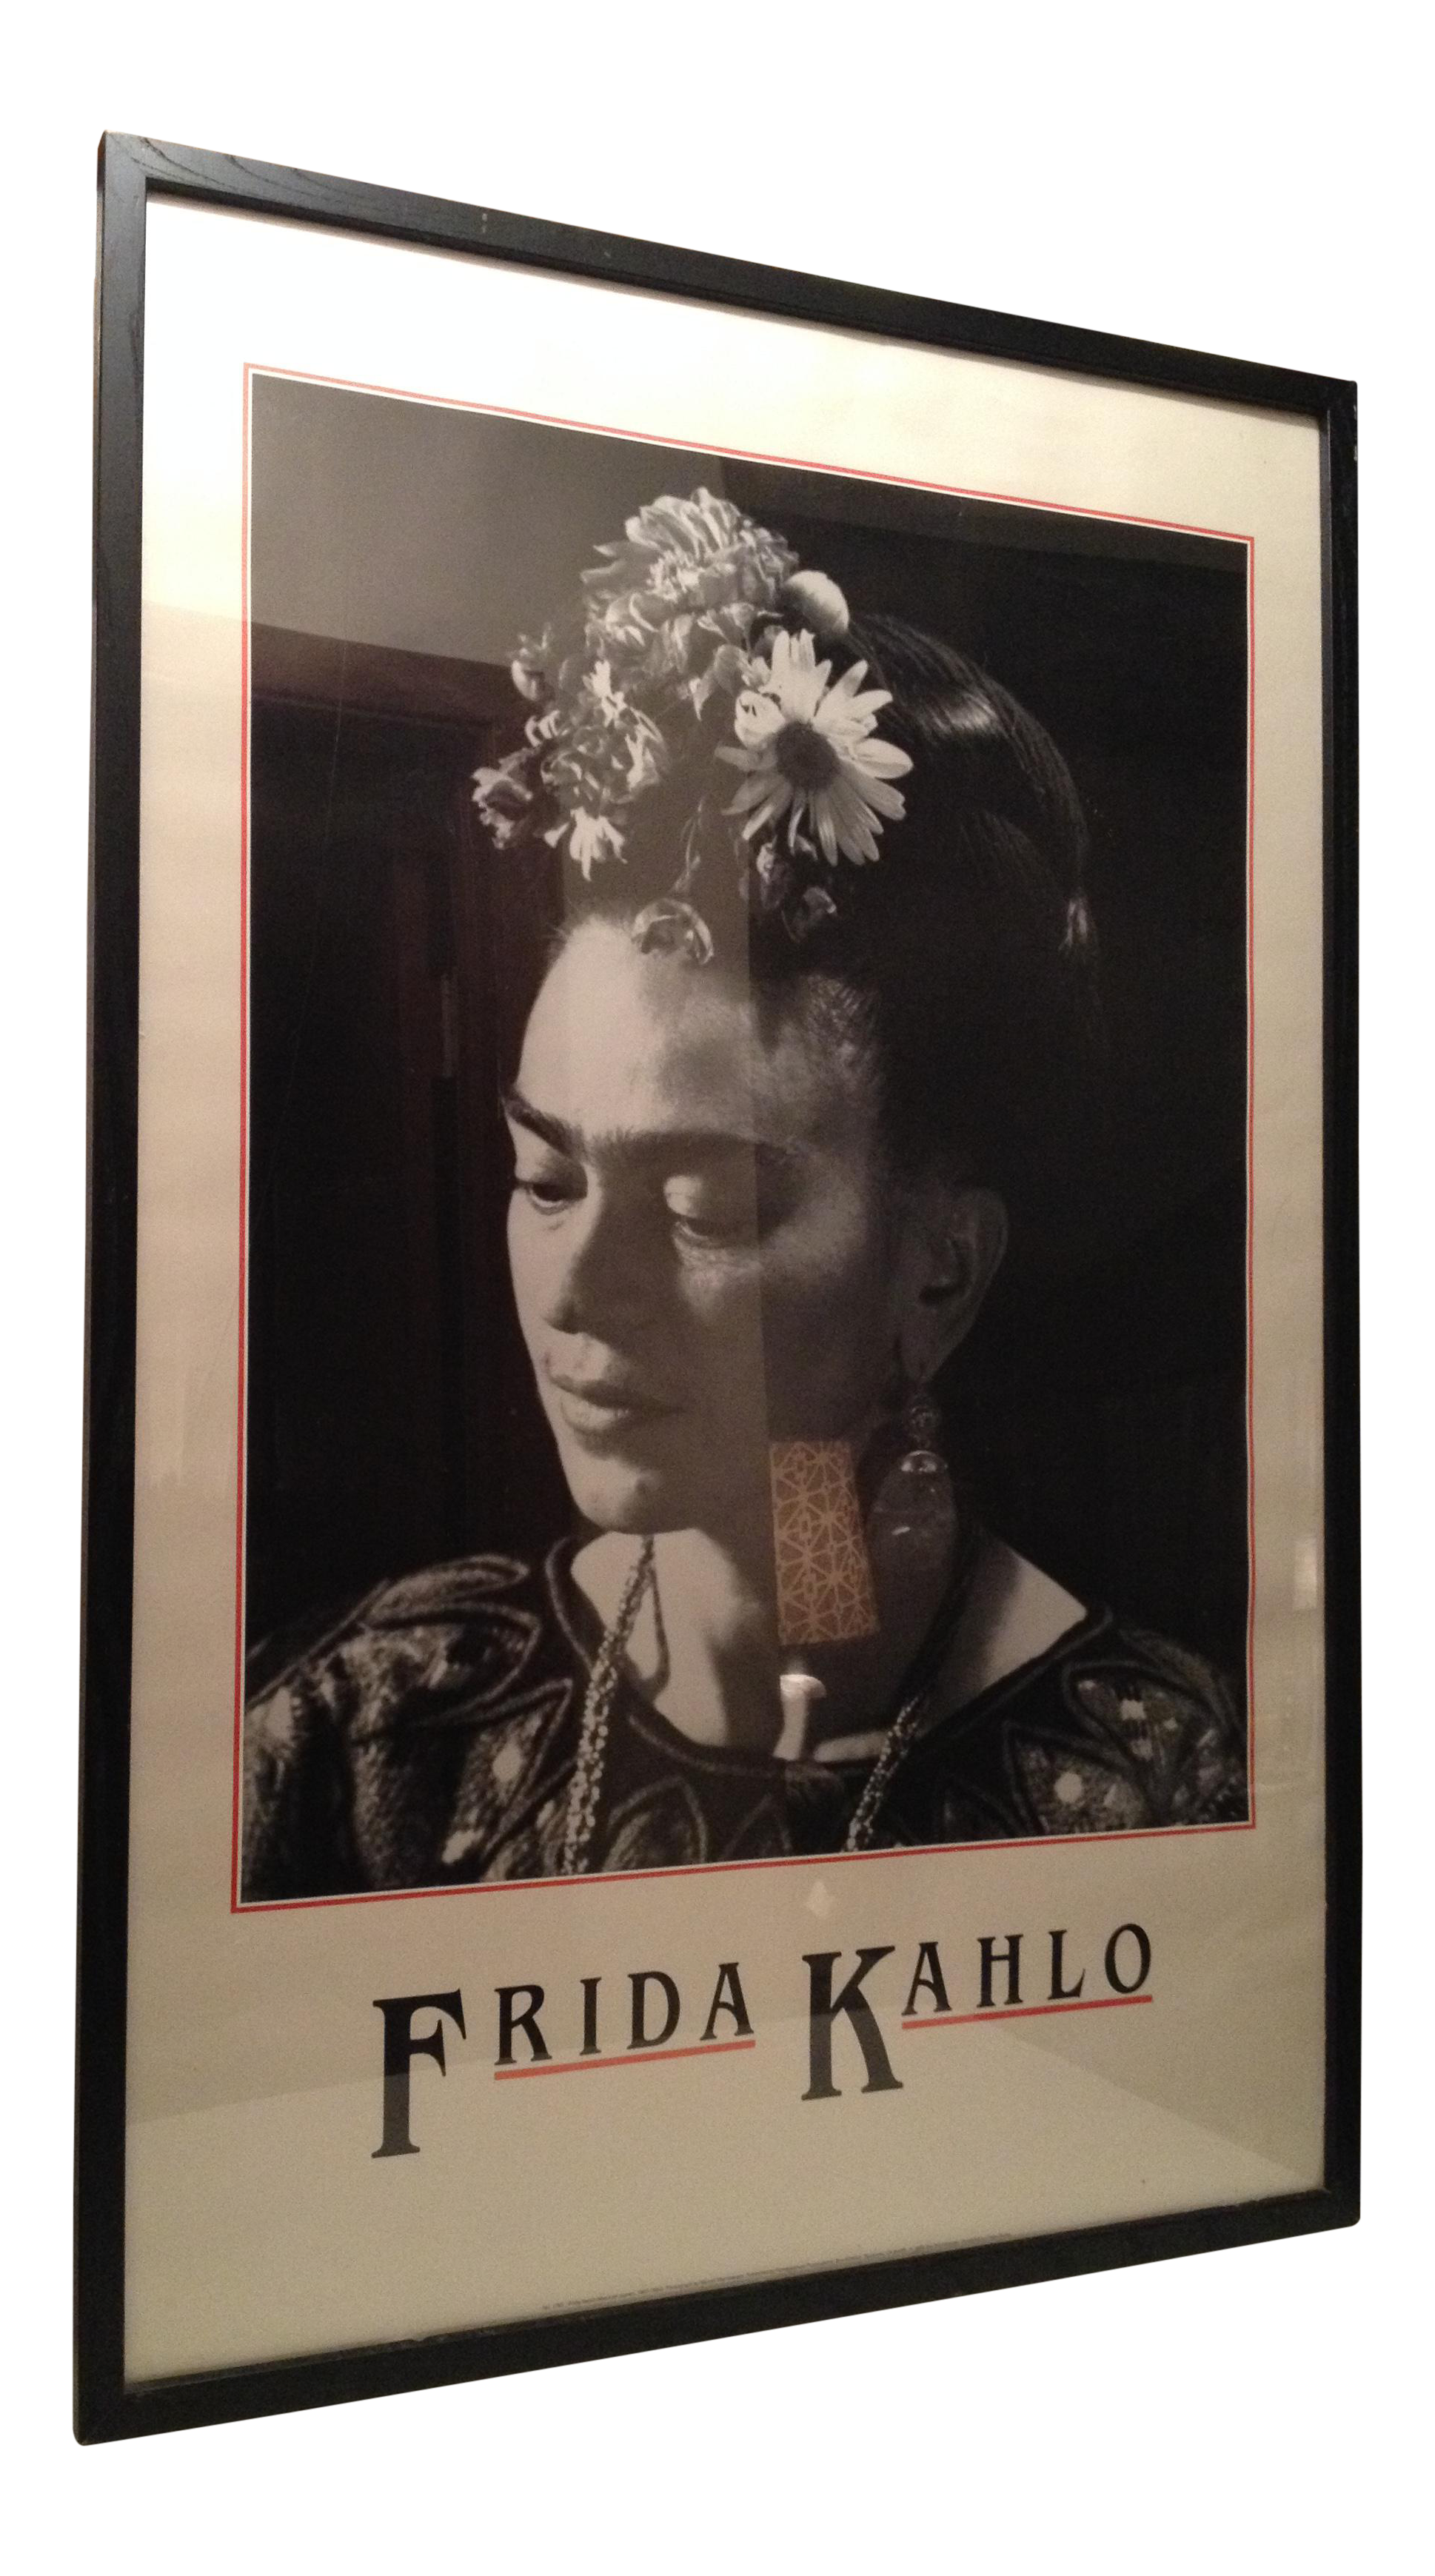 frida kahlo framed print chairish With kitchen cabinet trends 2018 combined with frida kahlo wall art